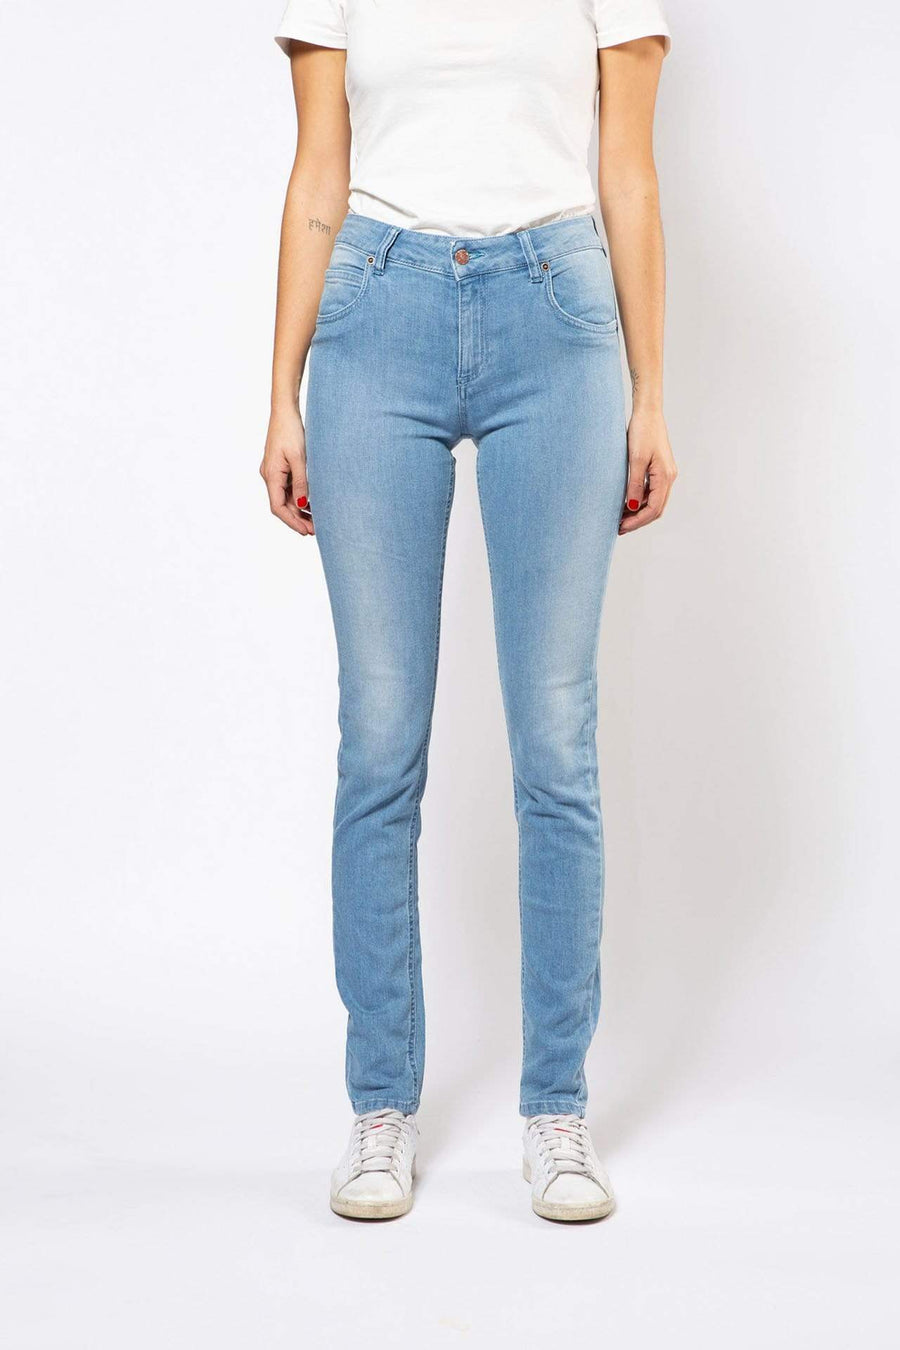 Pantalon Par.co Fashion SRL Glicine Skinny Jeans en coton biologique. mode durable mode éthique